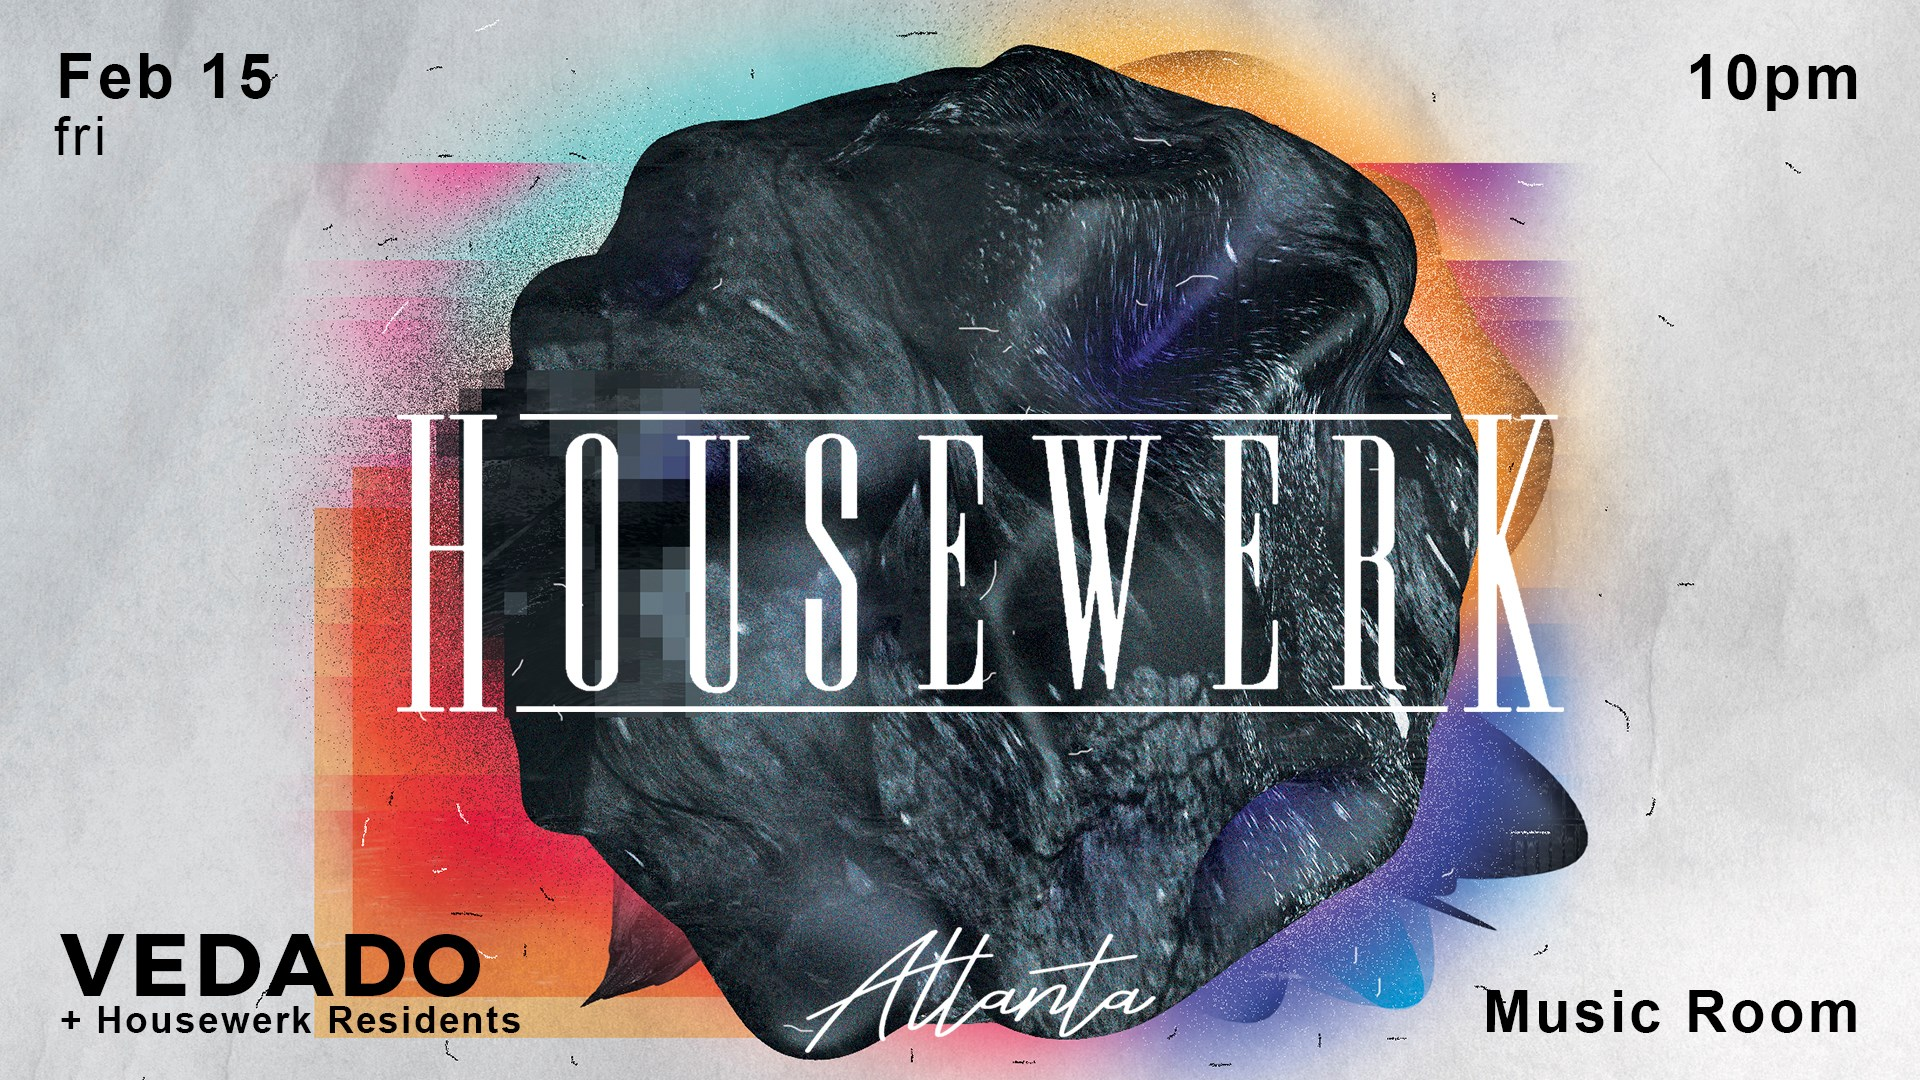 Housewerk Atlanta EDM Vedado The Music Room